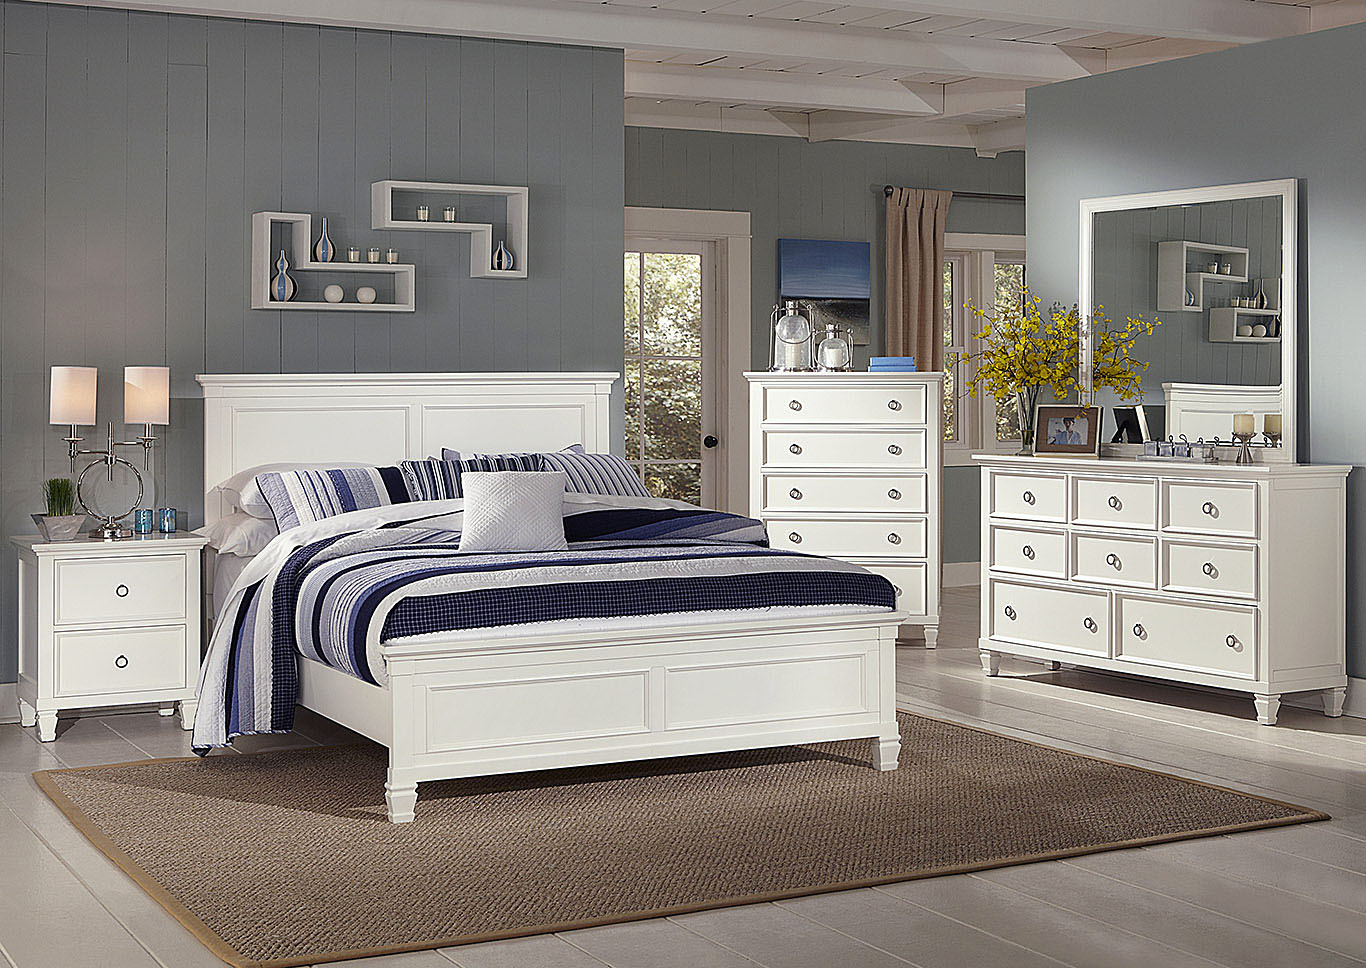 Tamarack White King Panel Bed,New Classic